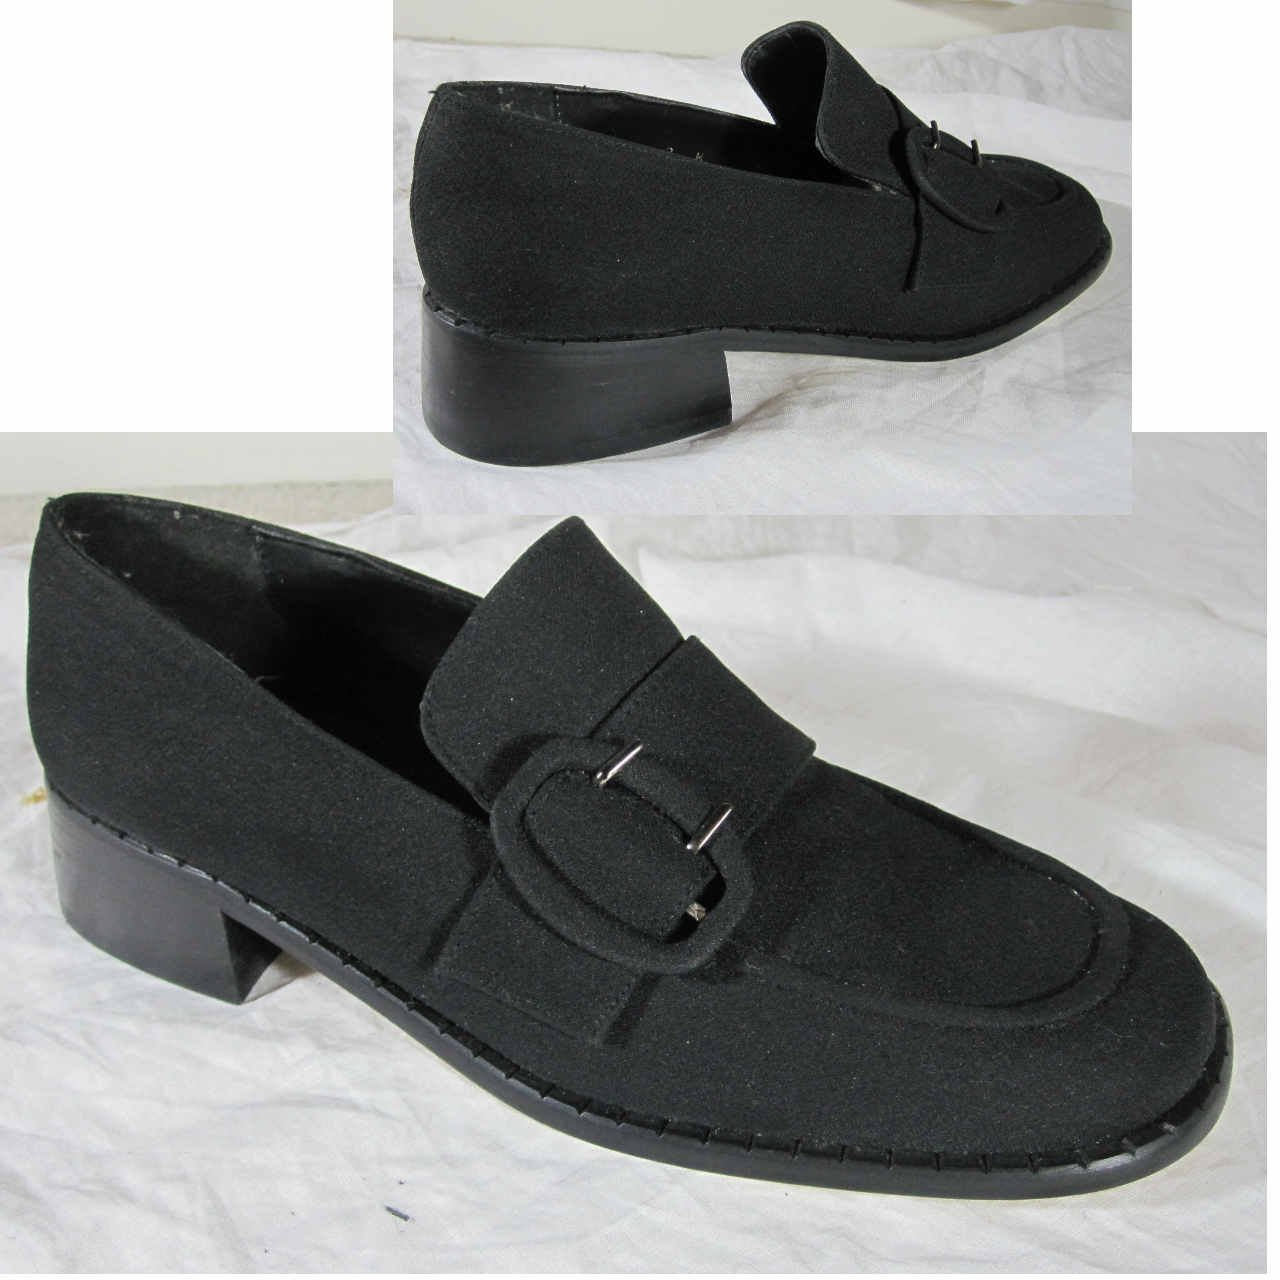 sz 7M Black Microfiber Buckle Loafers by A. Marinelli $19.99 Made in Spain